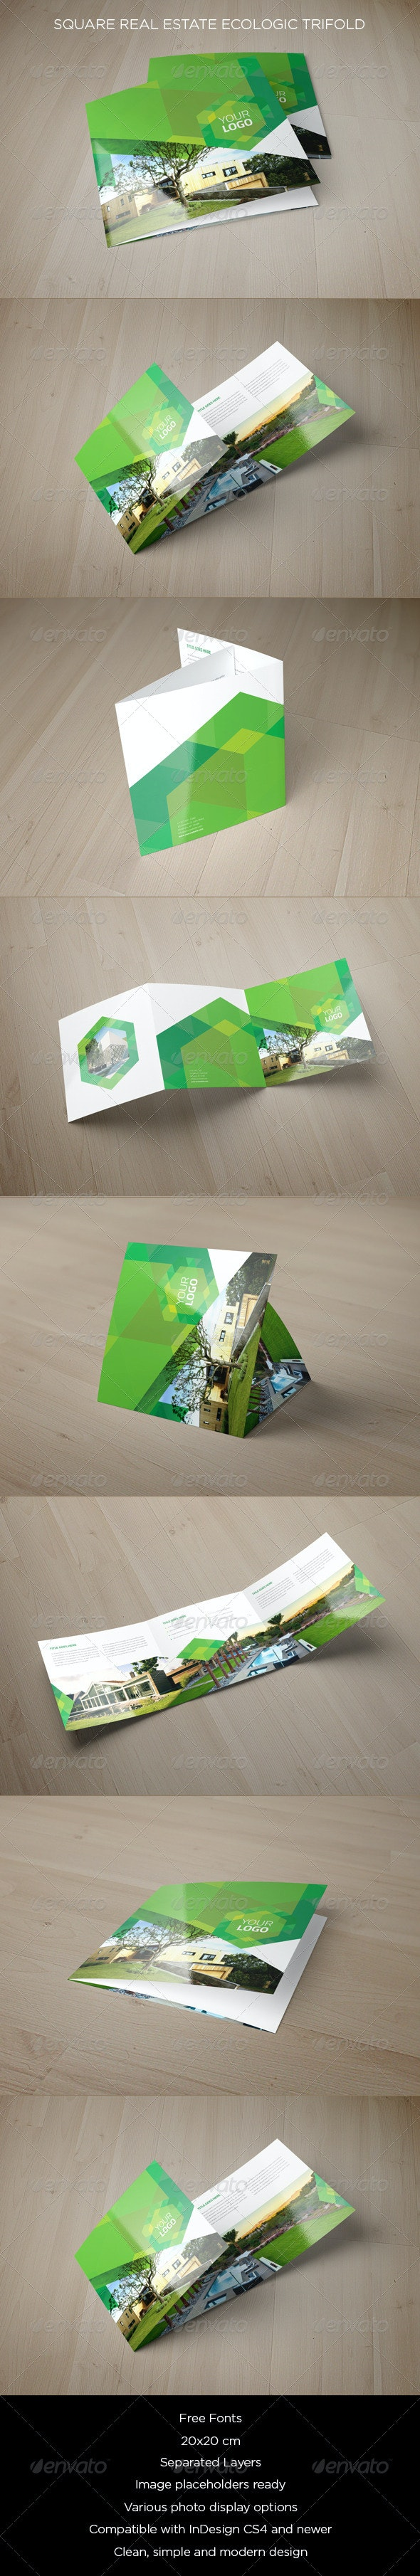 Square Real Estate Ecologic Trifold - Brochures Print Templates